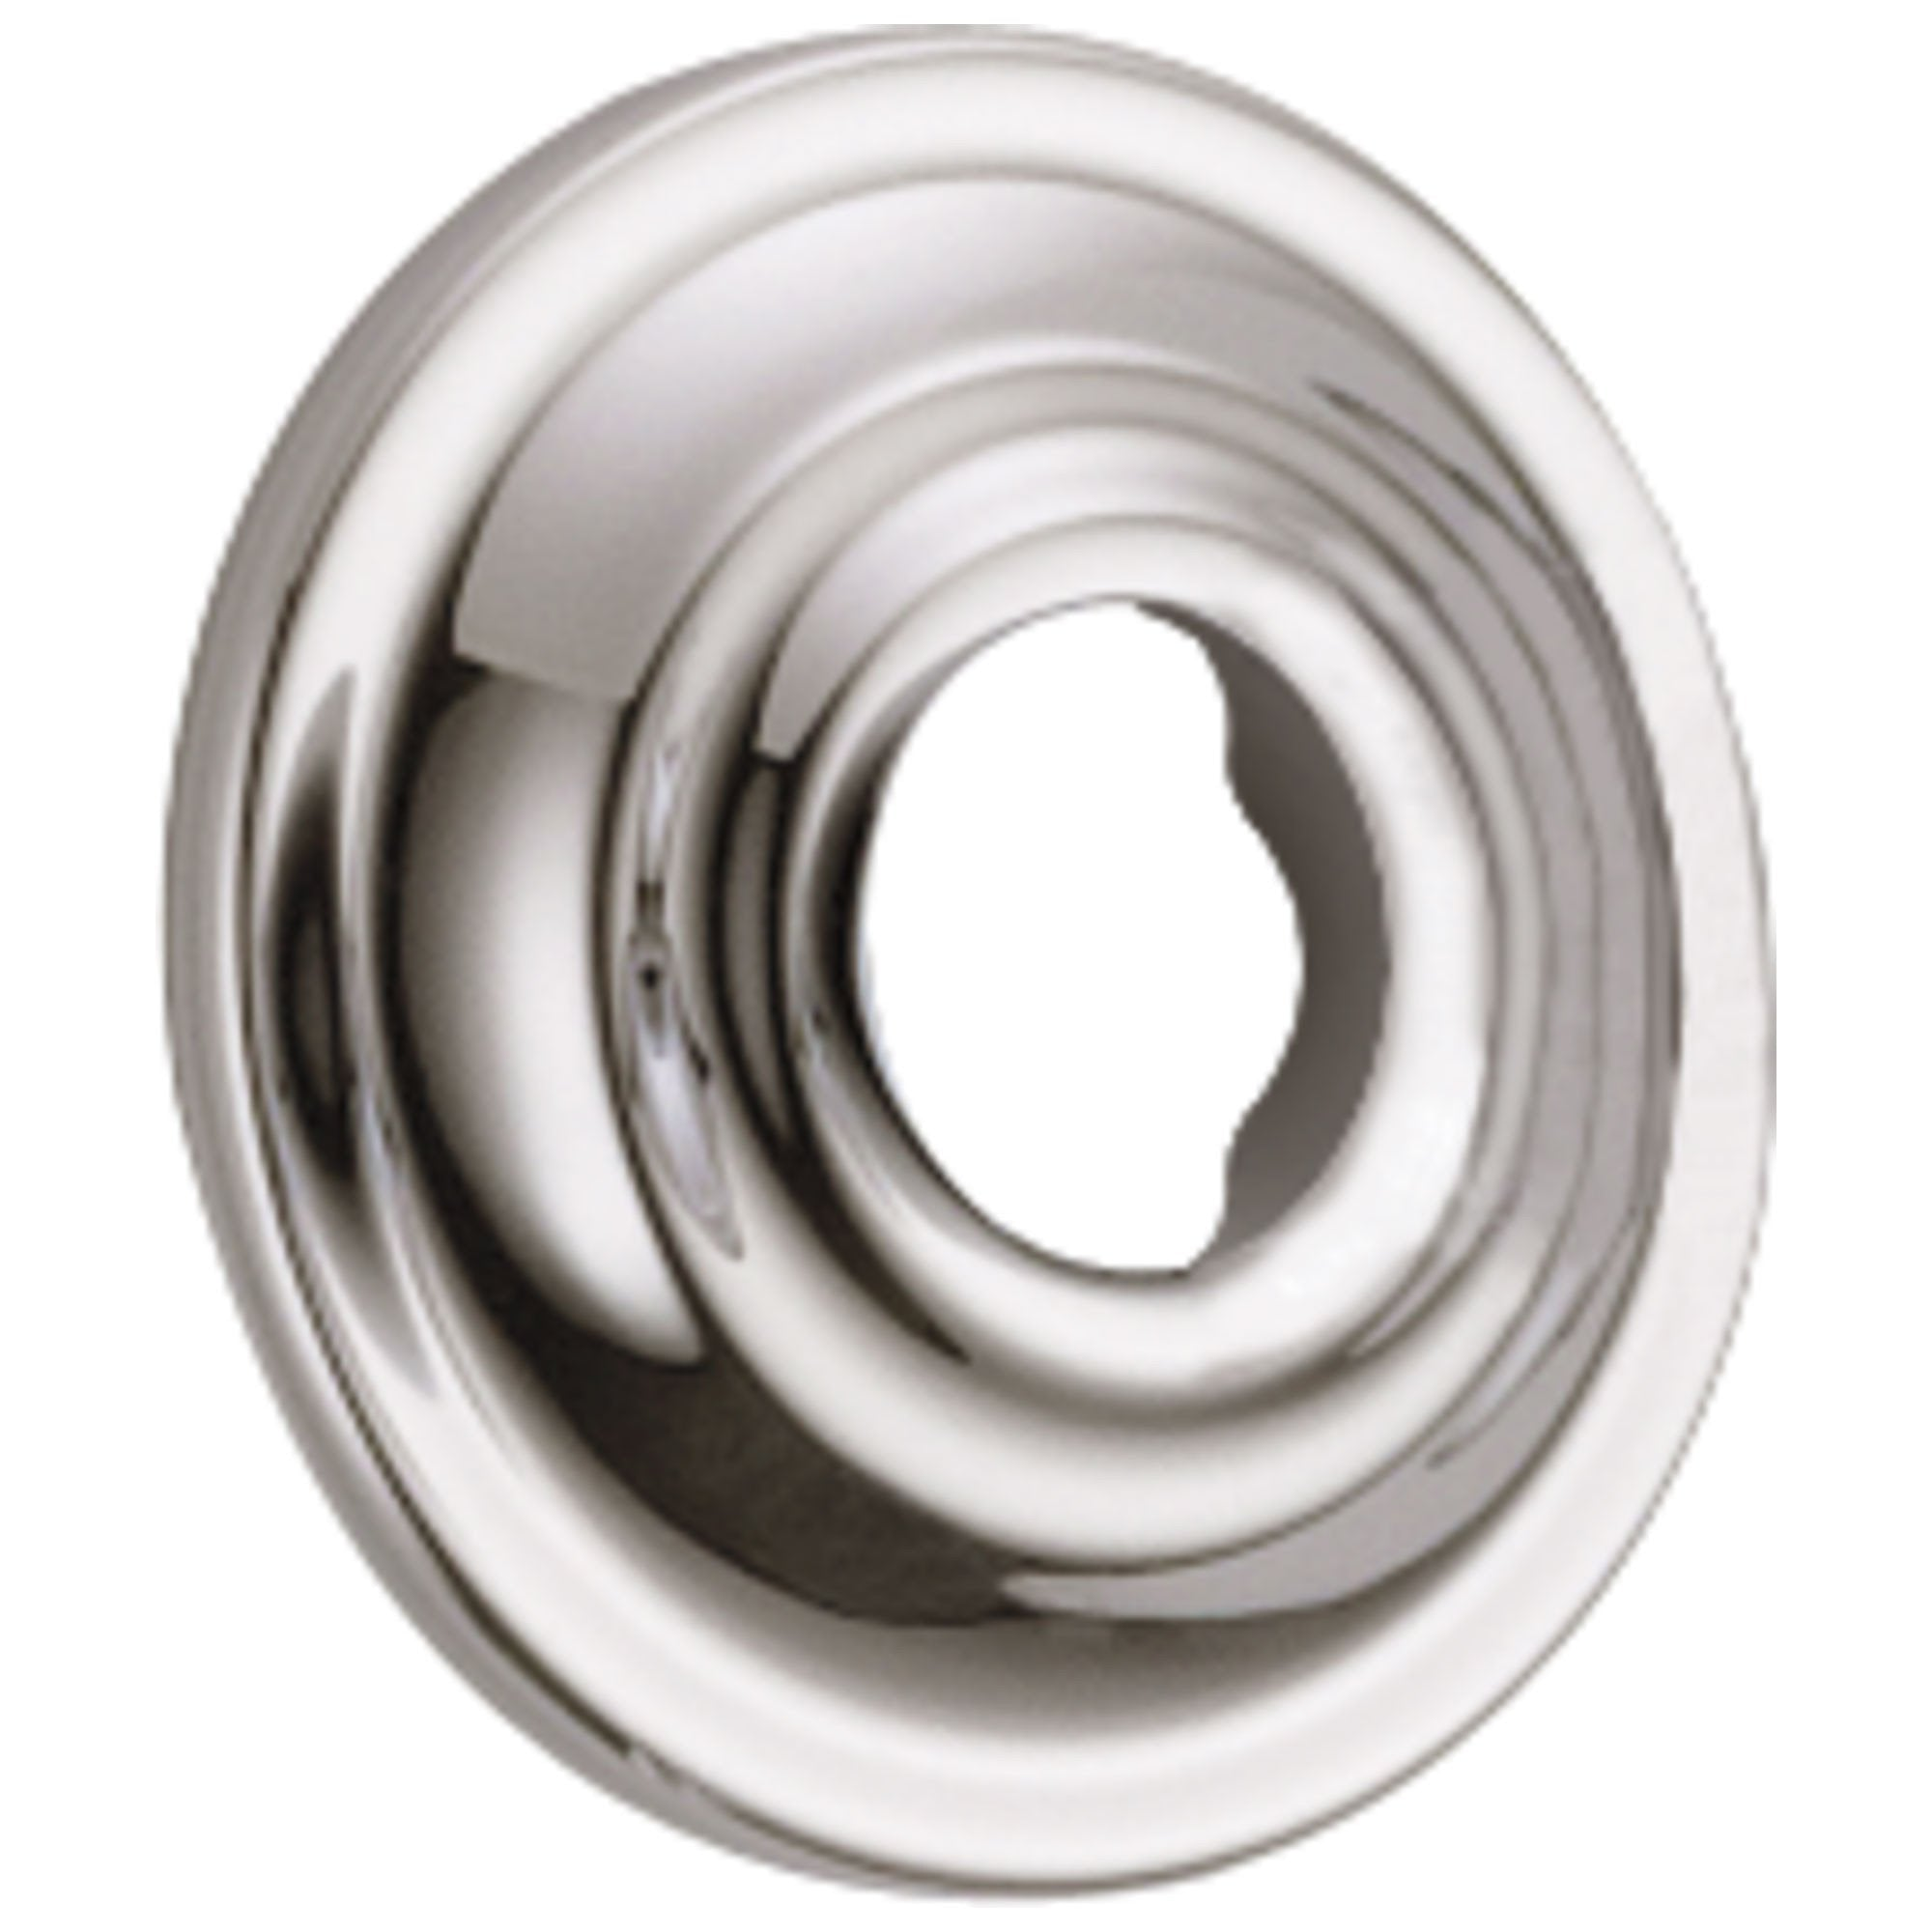 Delta Cassidy Collection Polished Nickel Finish Standard Shower Arm Flange DRP72562PN